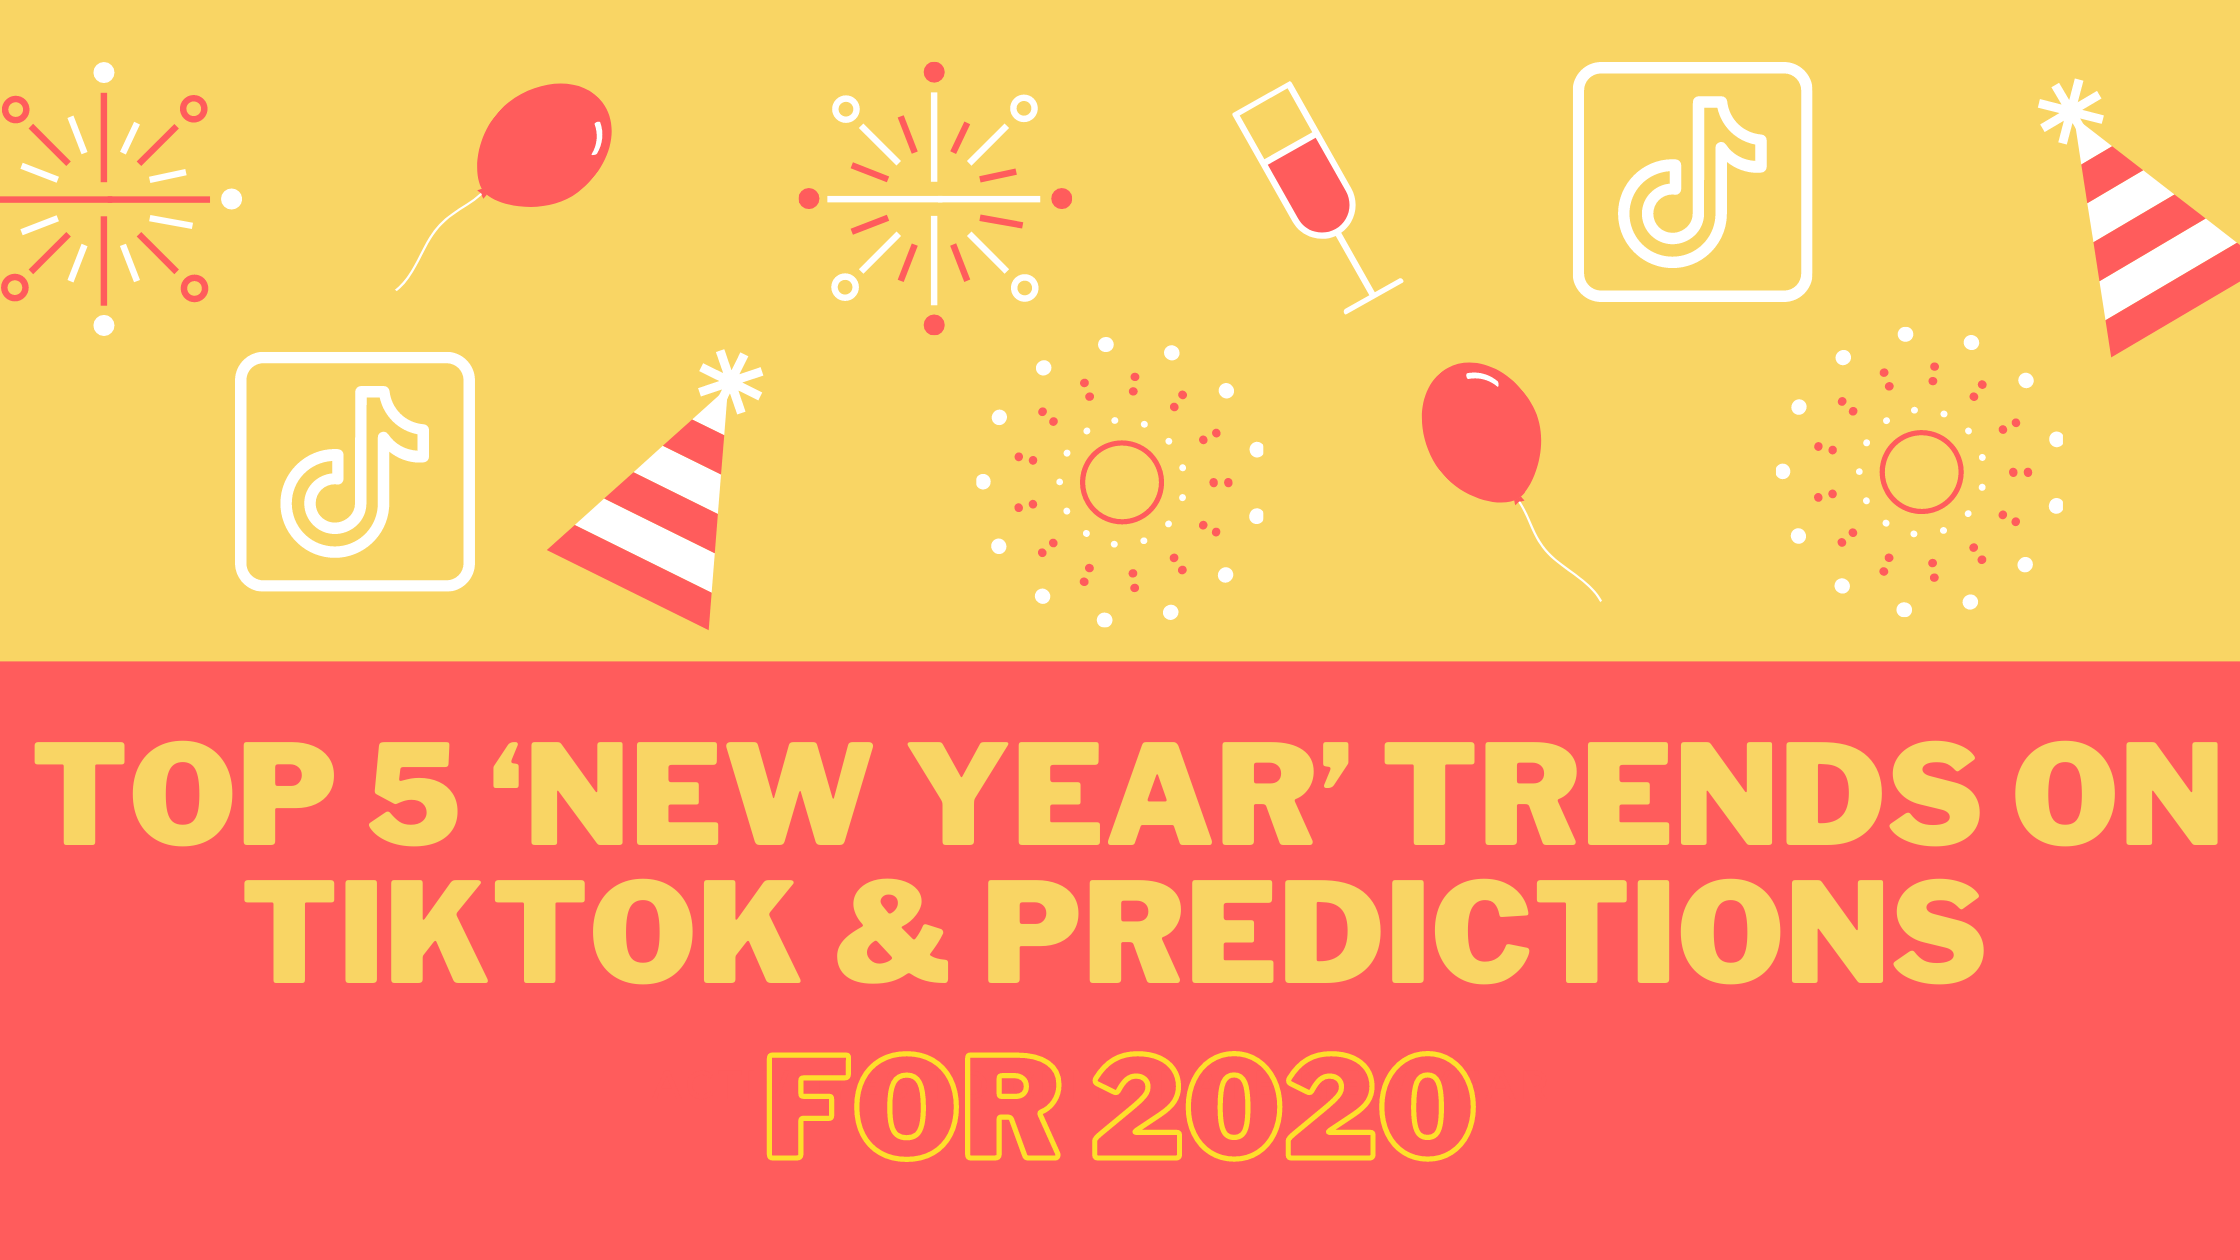 Top 5 'New Year' Trends on TikTok & Predictions for 2020